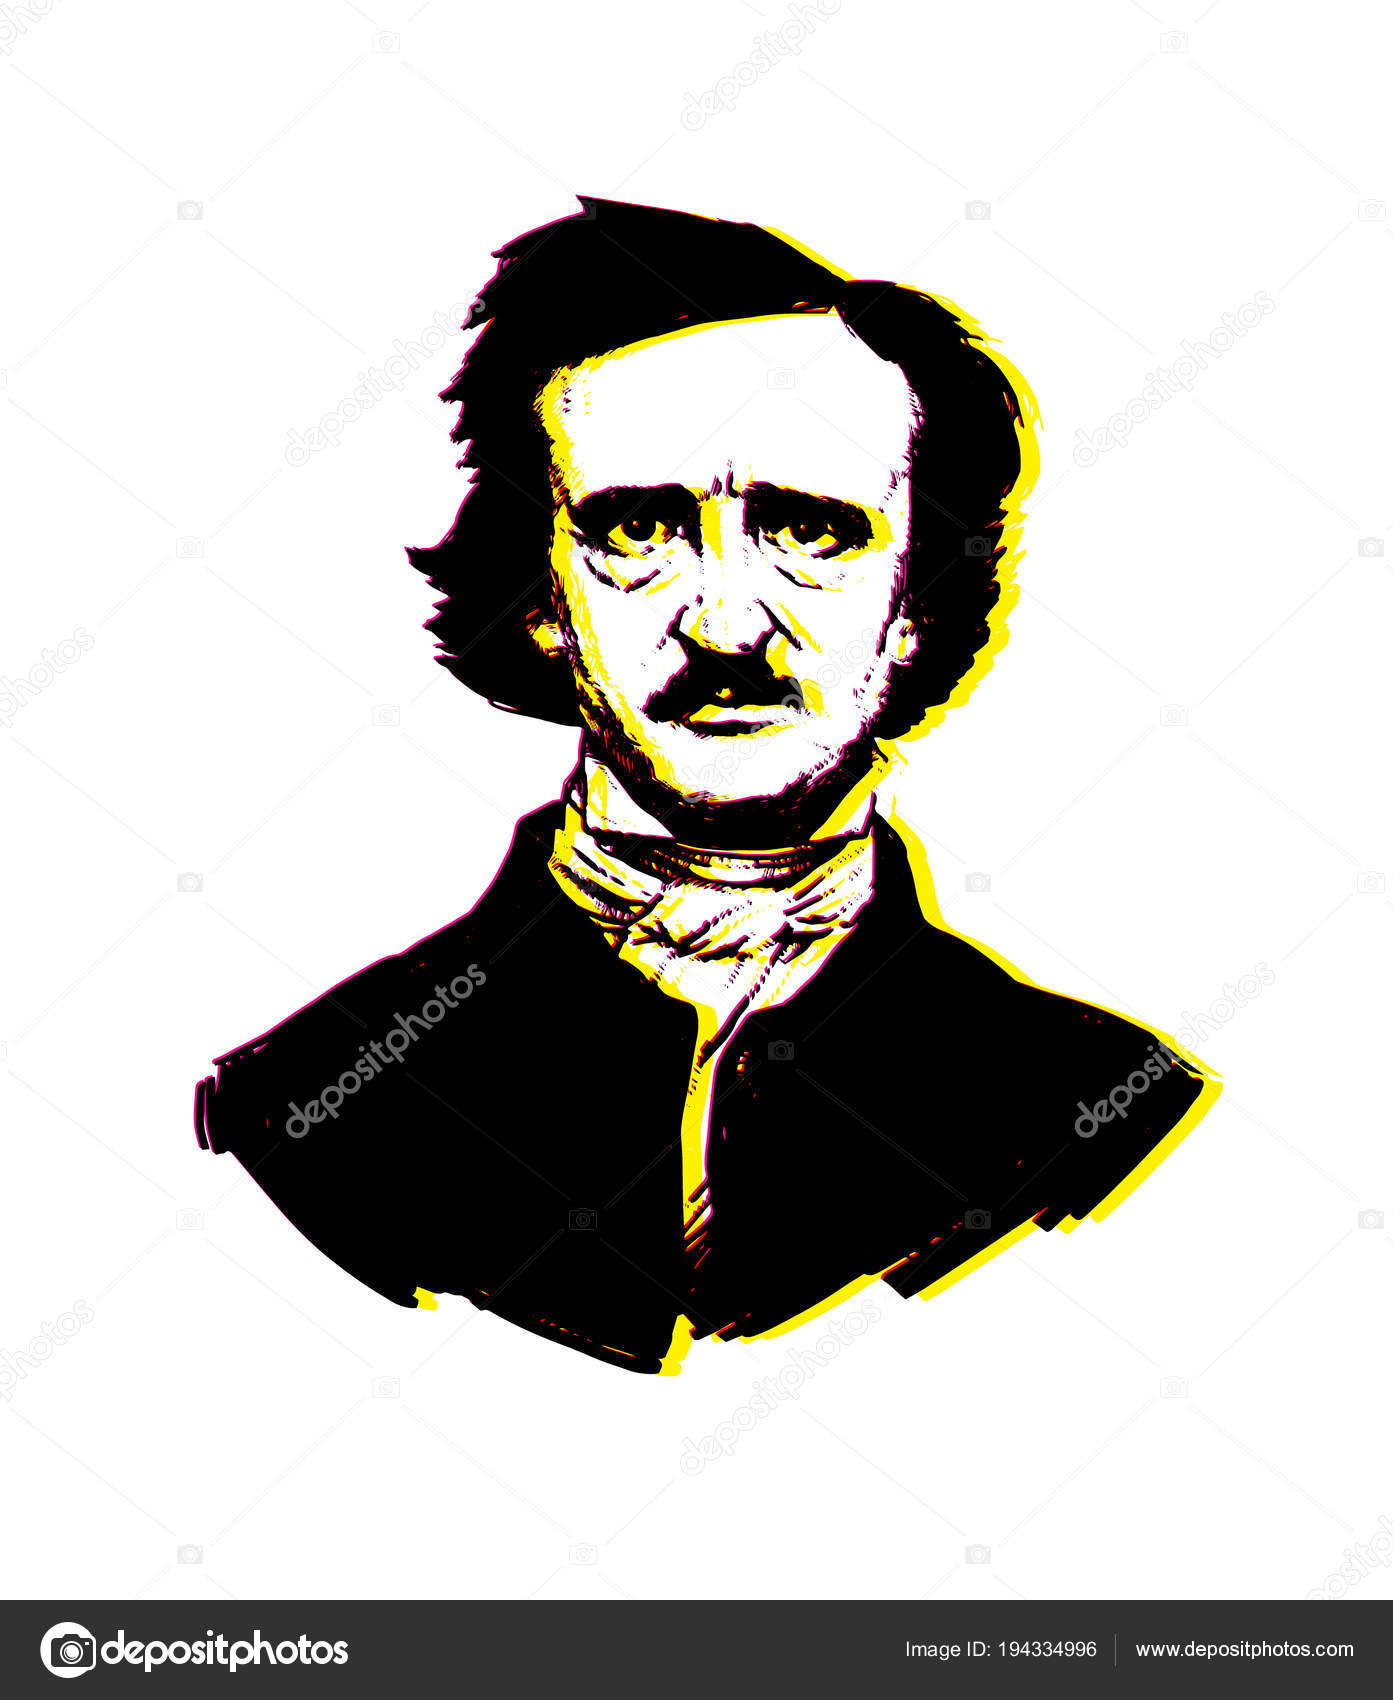 edgar allan poe writings This is not a complete list of works by poe these are my favorite stories and ones i feel are important and should be read by more people it should be noted that the year in parenthesis is the year the linked text was published, not the year poe actually wrote the story.